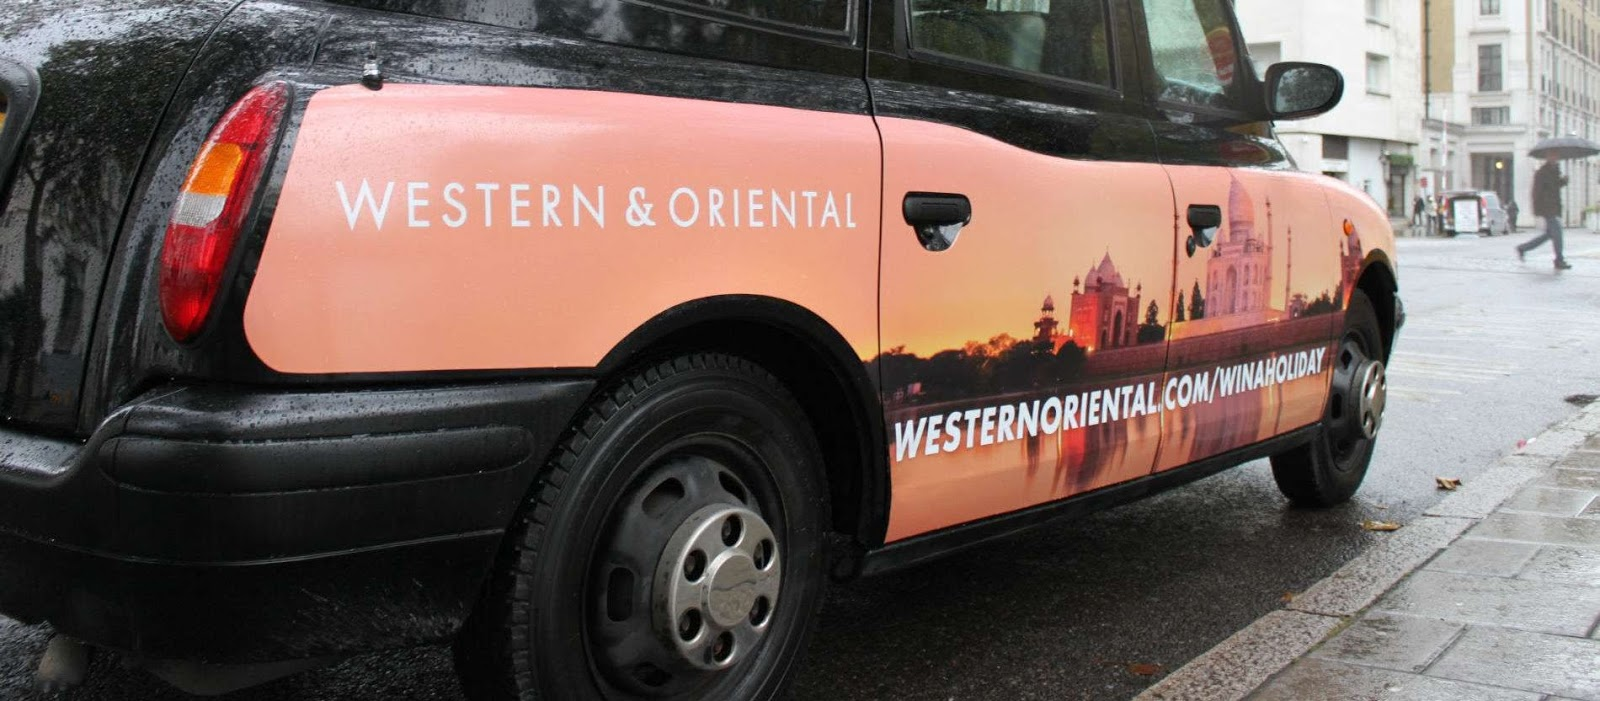 Western Oriental Superside - London